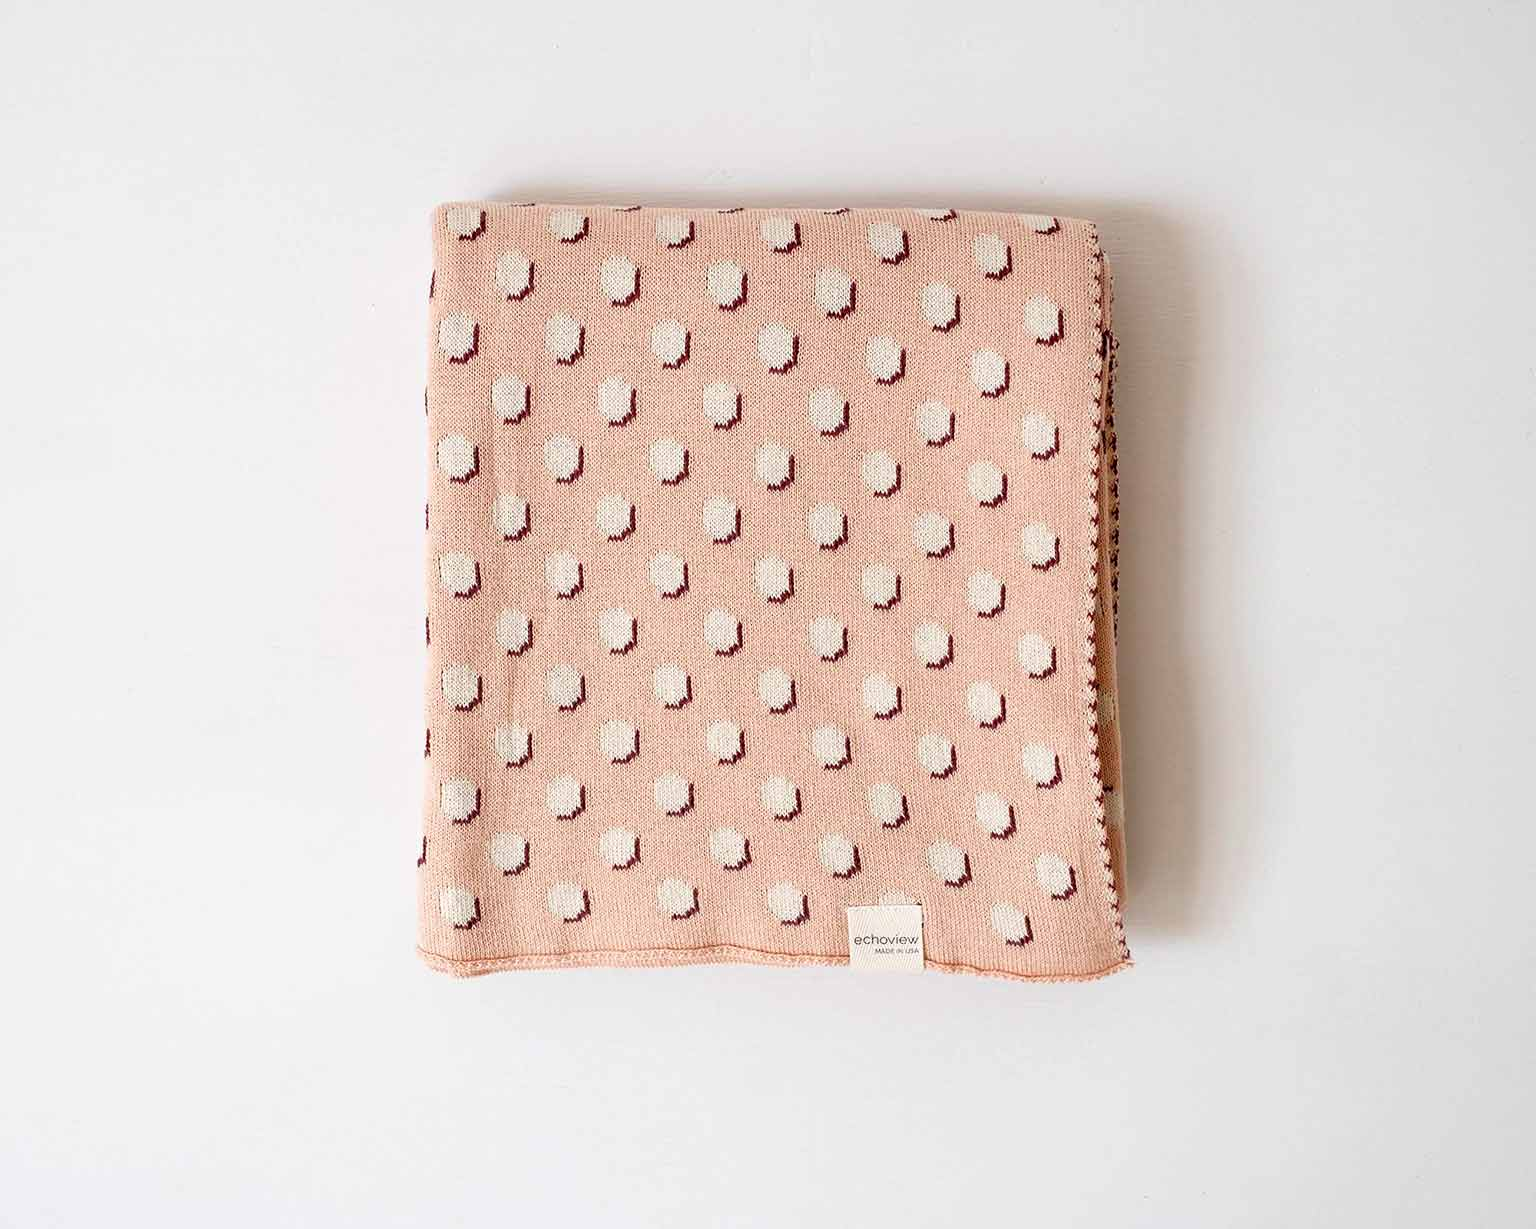 Polka Dot Knit Baby Blanket - Ethical, Sustainable Holiday Gift Guide - That Homebird Life Blog